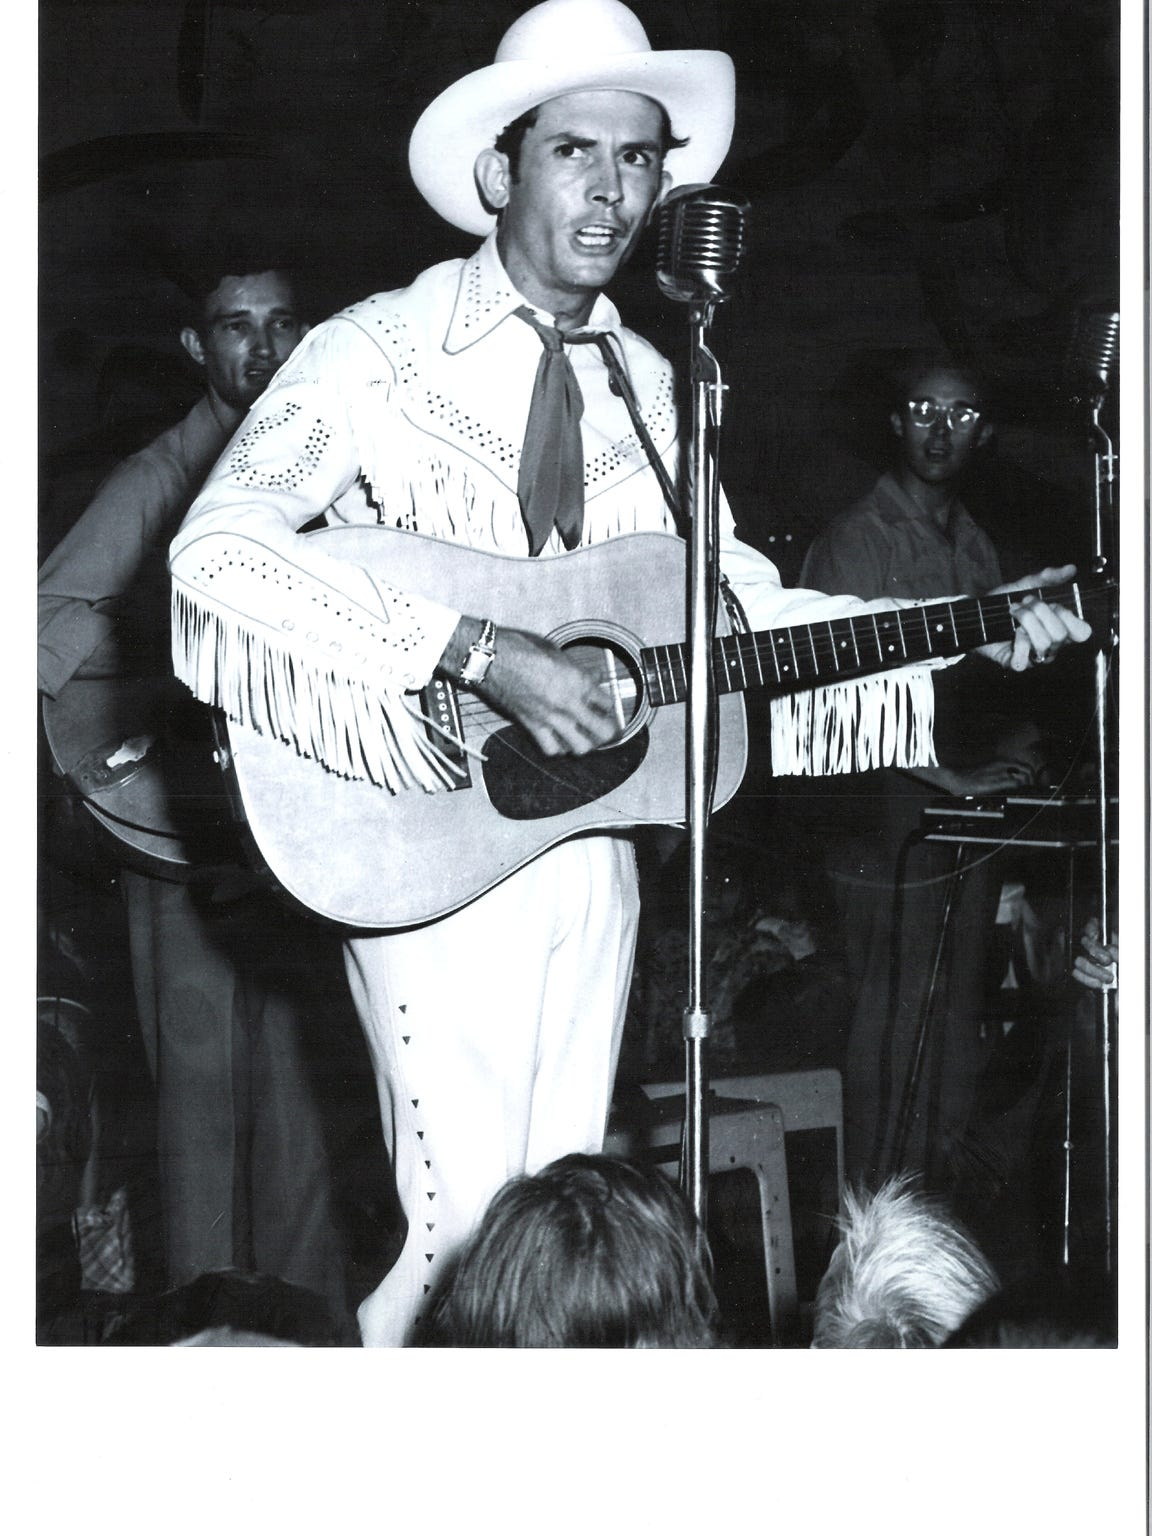 Sixty years after his death, Hank Williams remains an American songwriting icon.